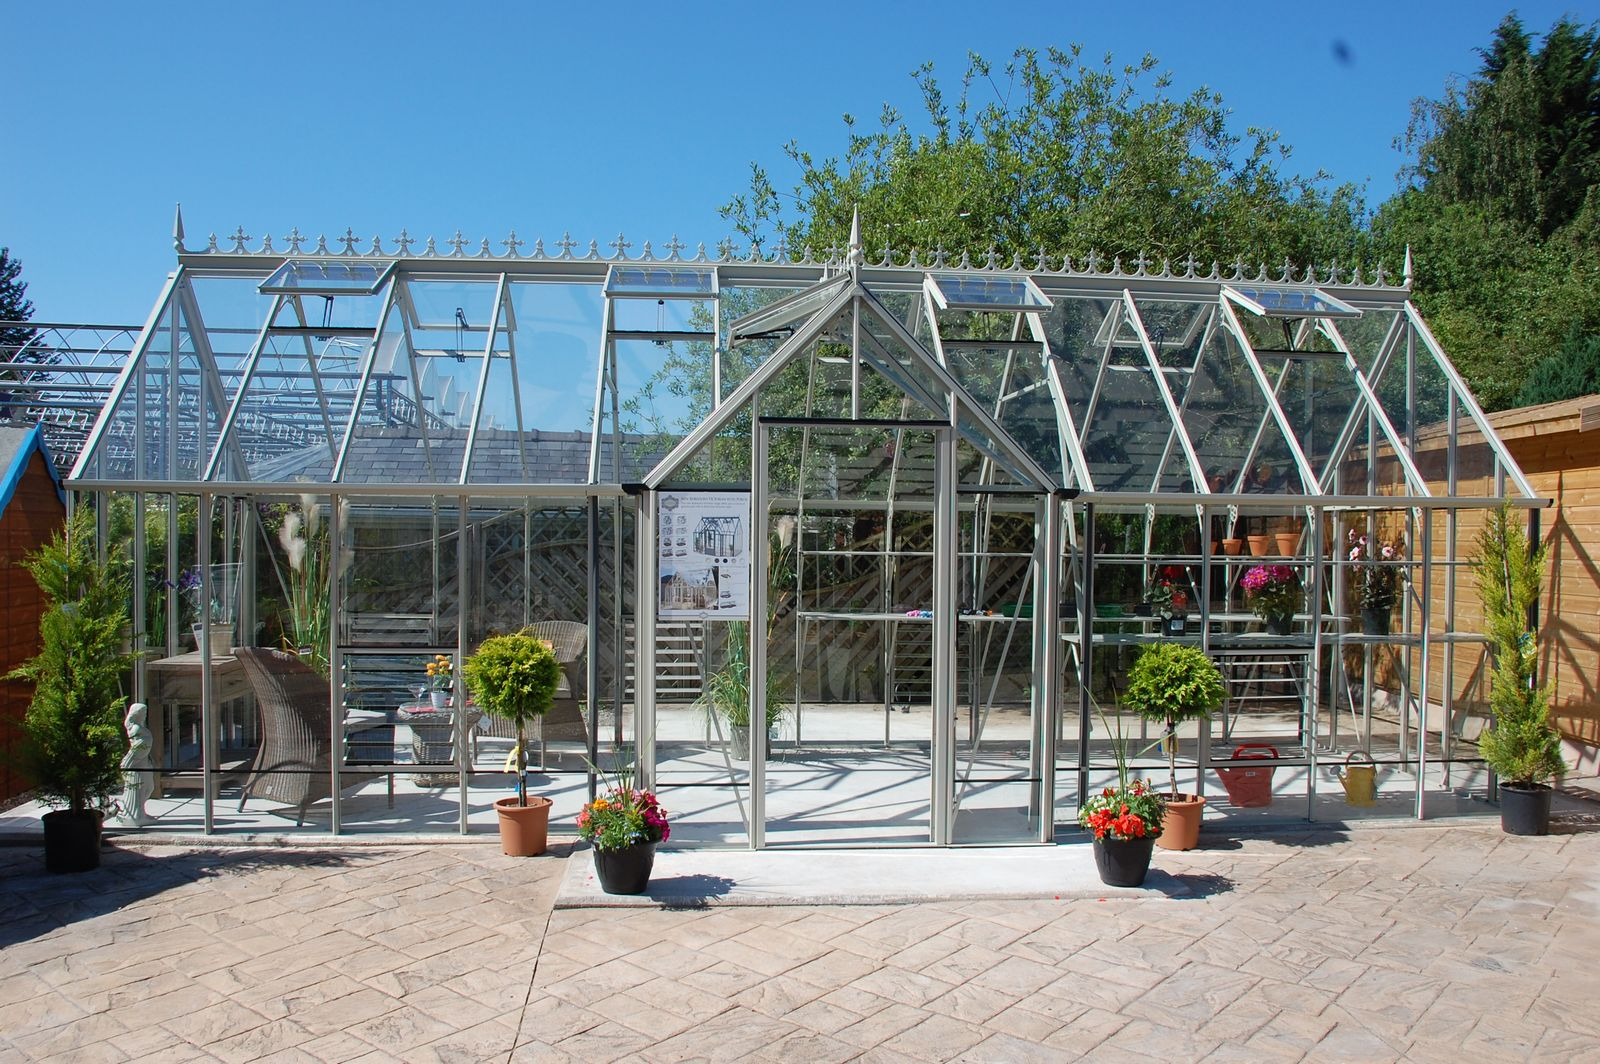 Robinsons Radley greenhouse on display at Wilmslow display centre